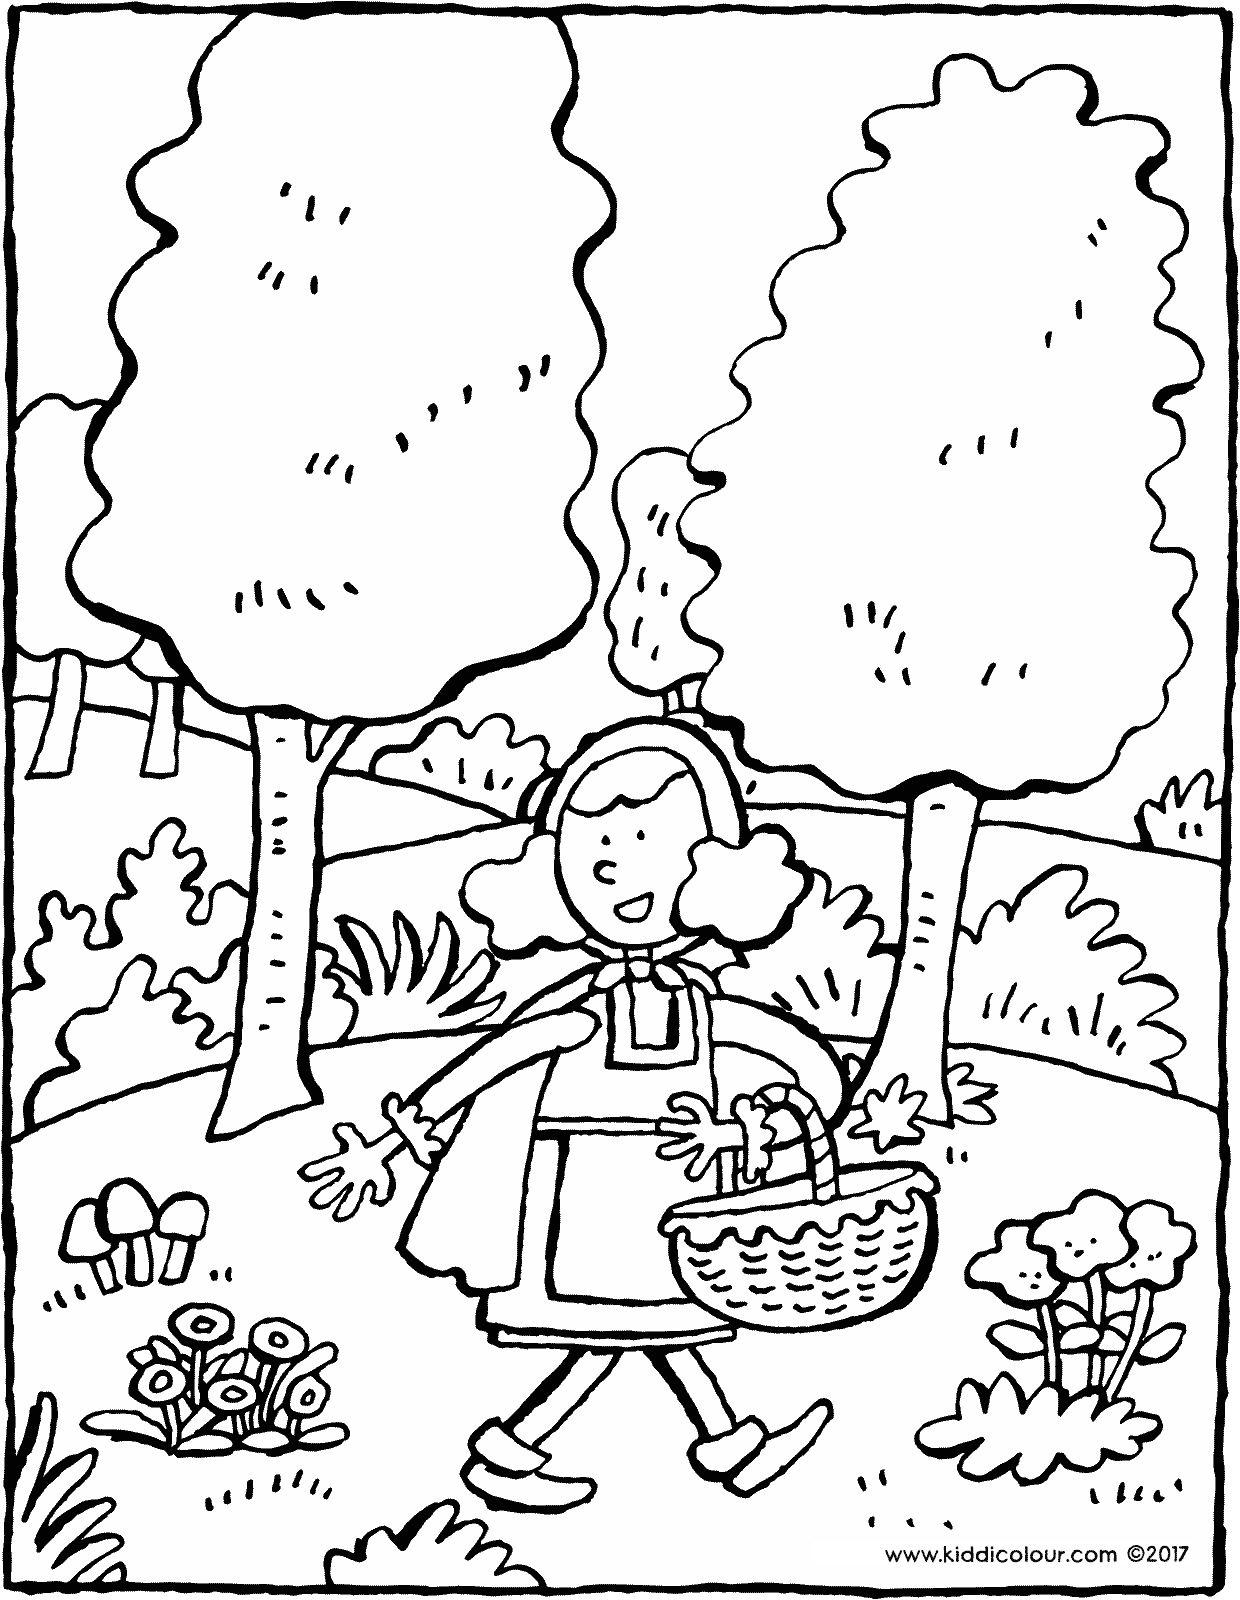 Little Red Riding Hood in the woods colouring page drawing picture 01V